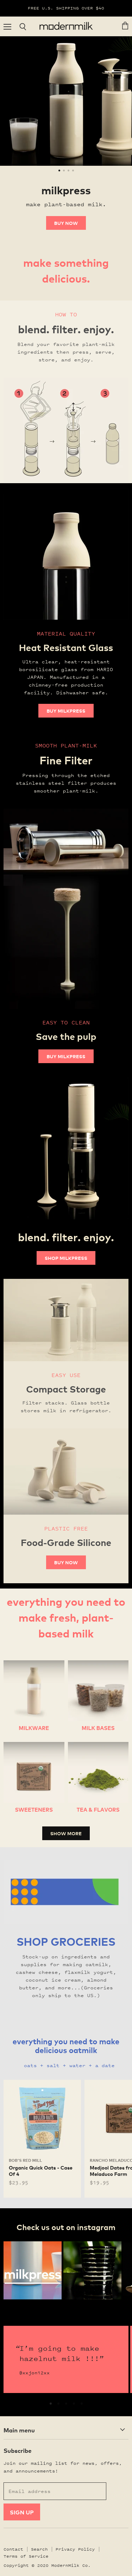 Example of Design for Food & Drink, Food, Mobile Landing Page by modernmilk.co | Mobile Landing Page Design